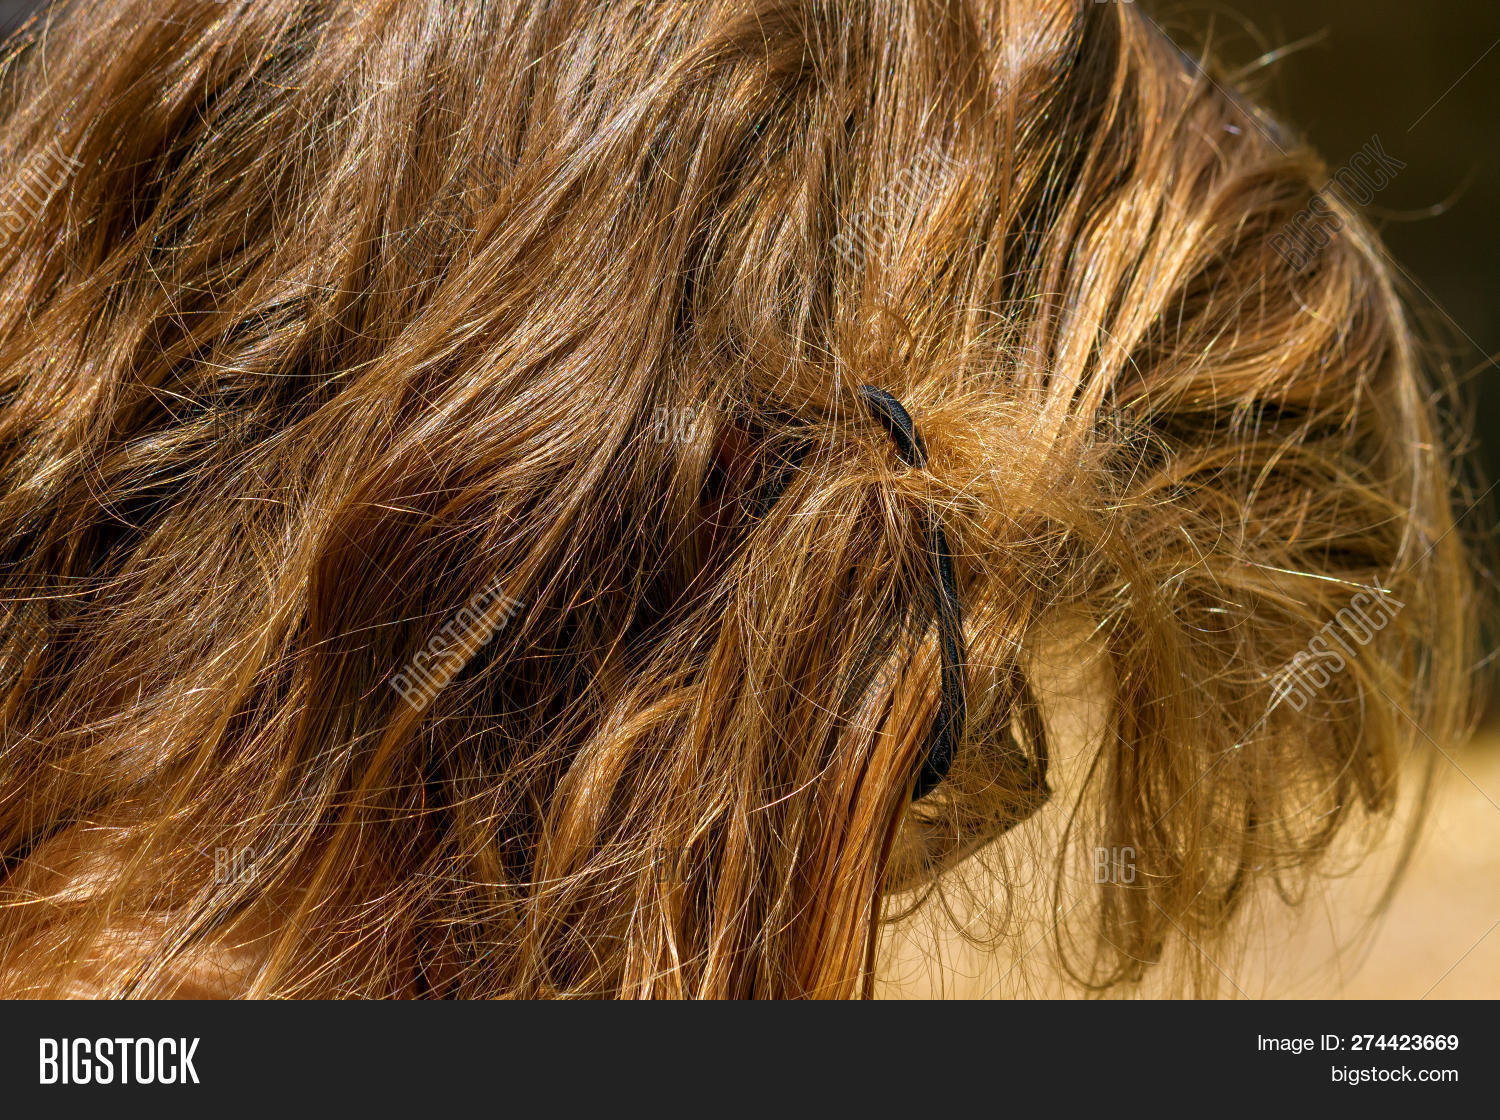 Matted Hair Blond Girl Image & Photo (Free Trial) | Bigstock